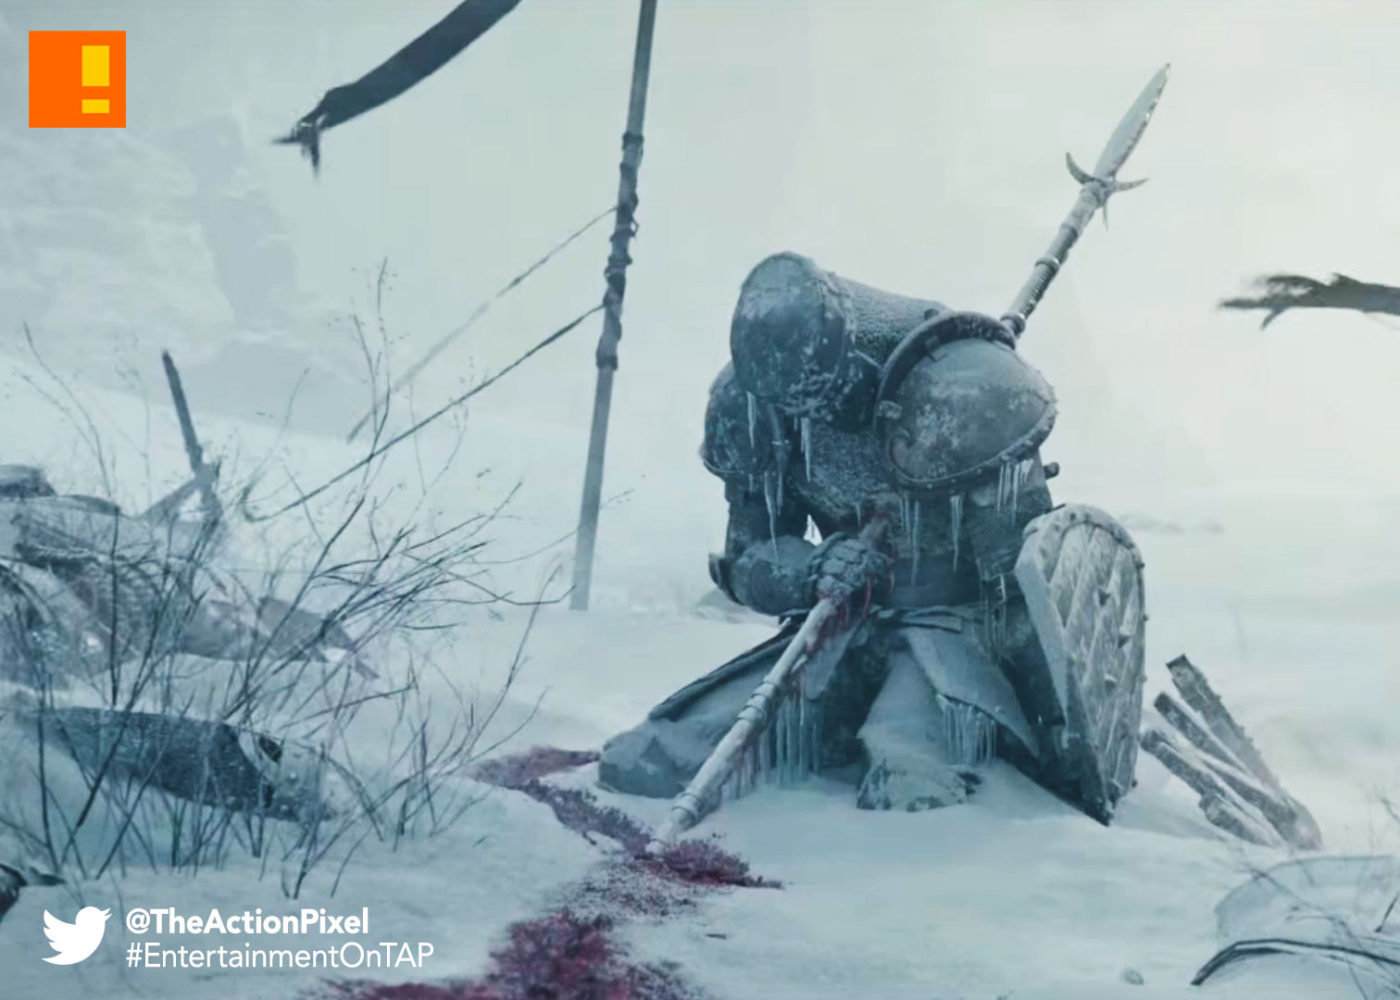 for honor, ubisoft, the action pixel, thin red path, trailer, entertainment on tap, the action pixel